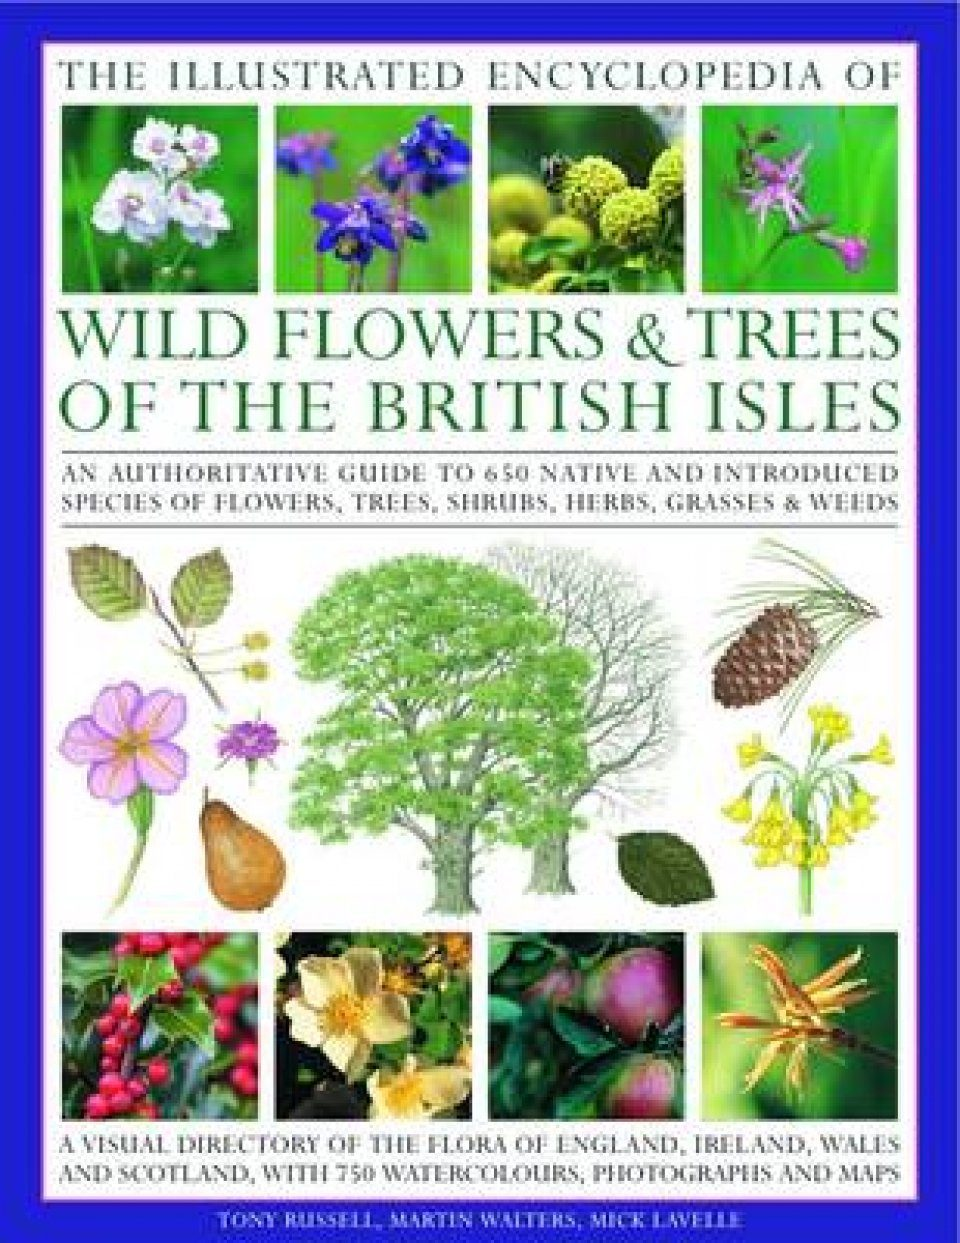 Illustrated Encyclopedia of Wild Flowers and Trees of the British Isles